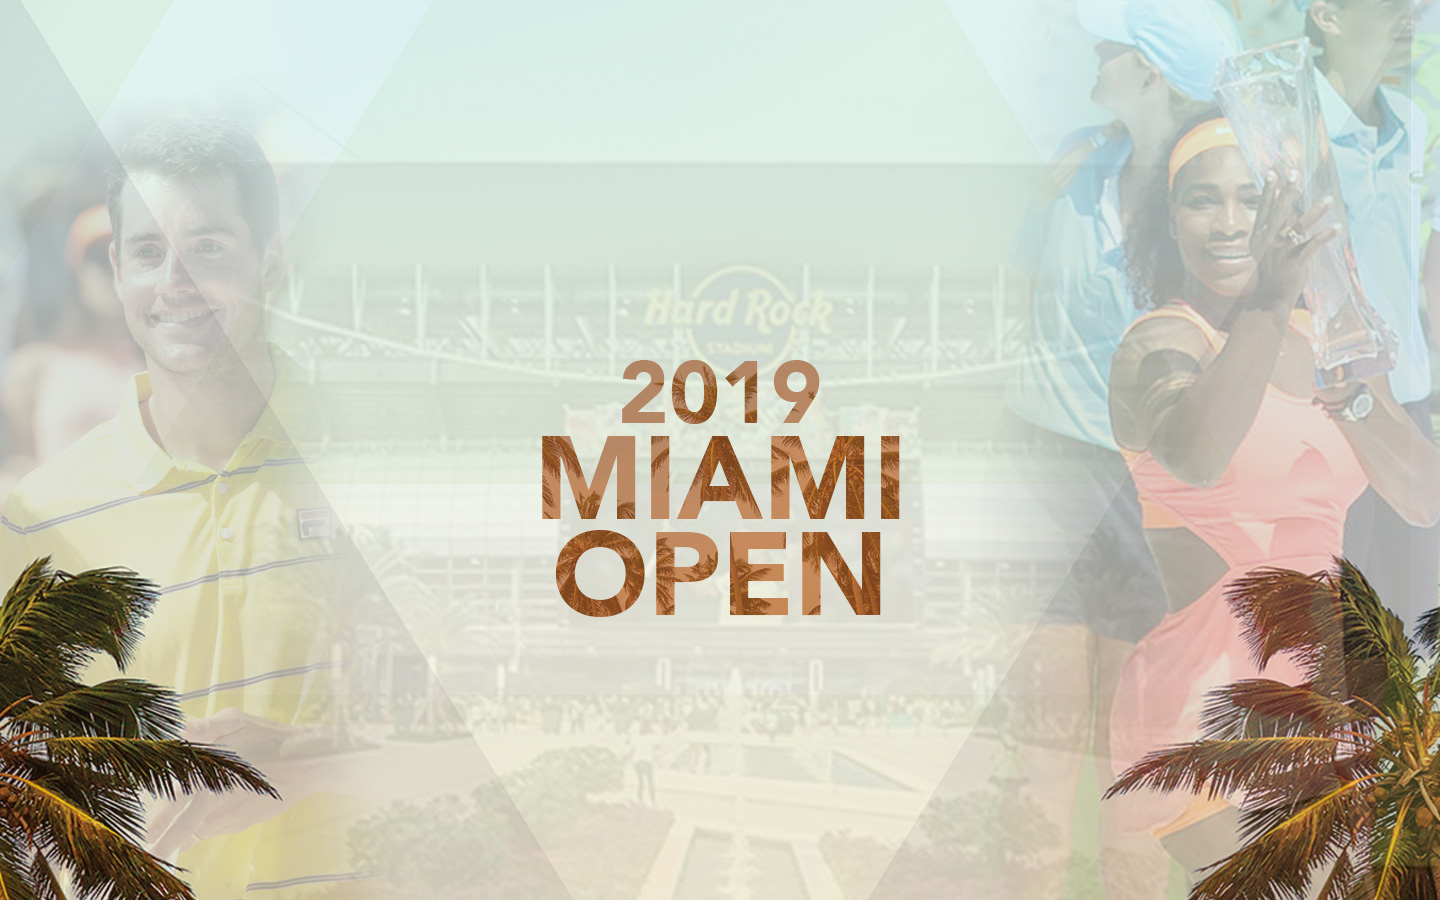 Miami Open ticket giveaway